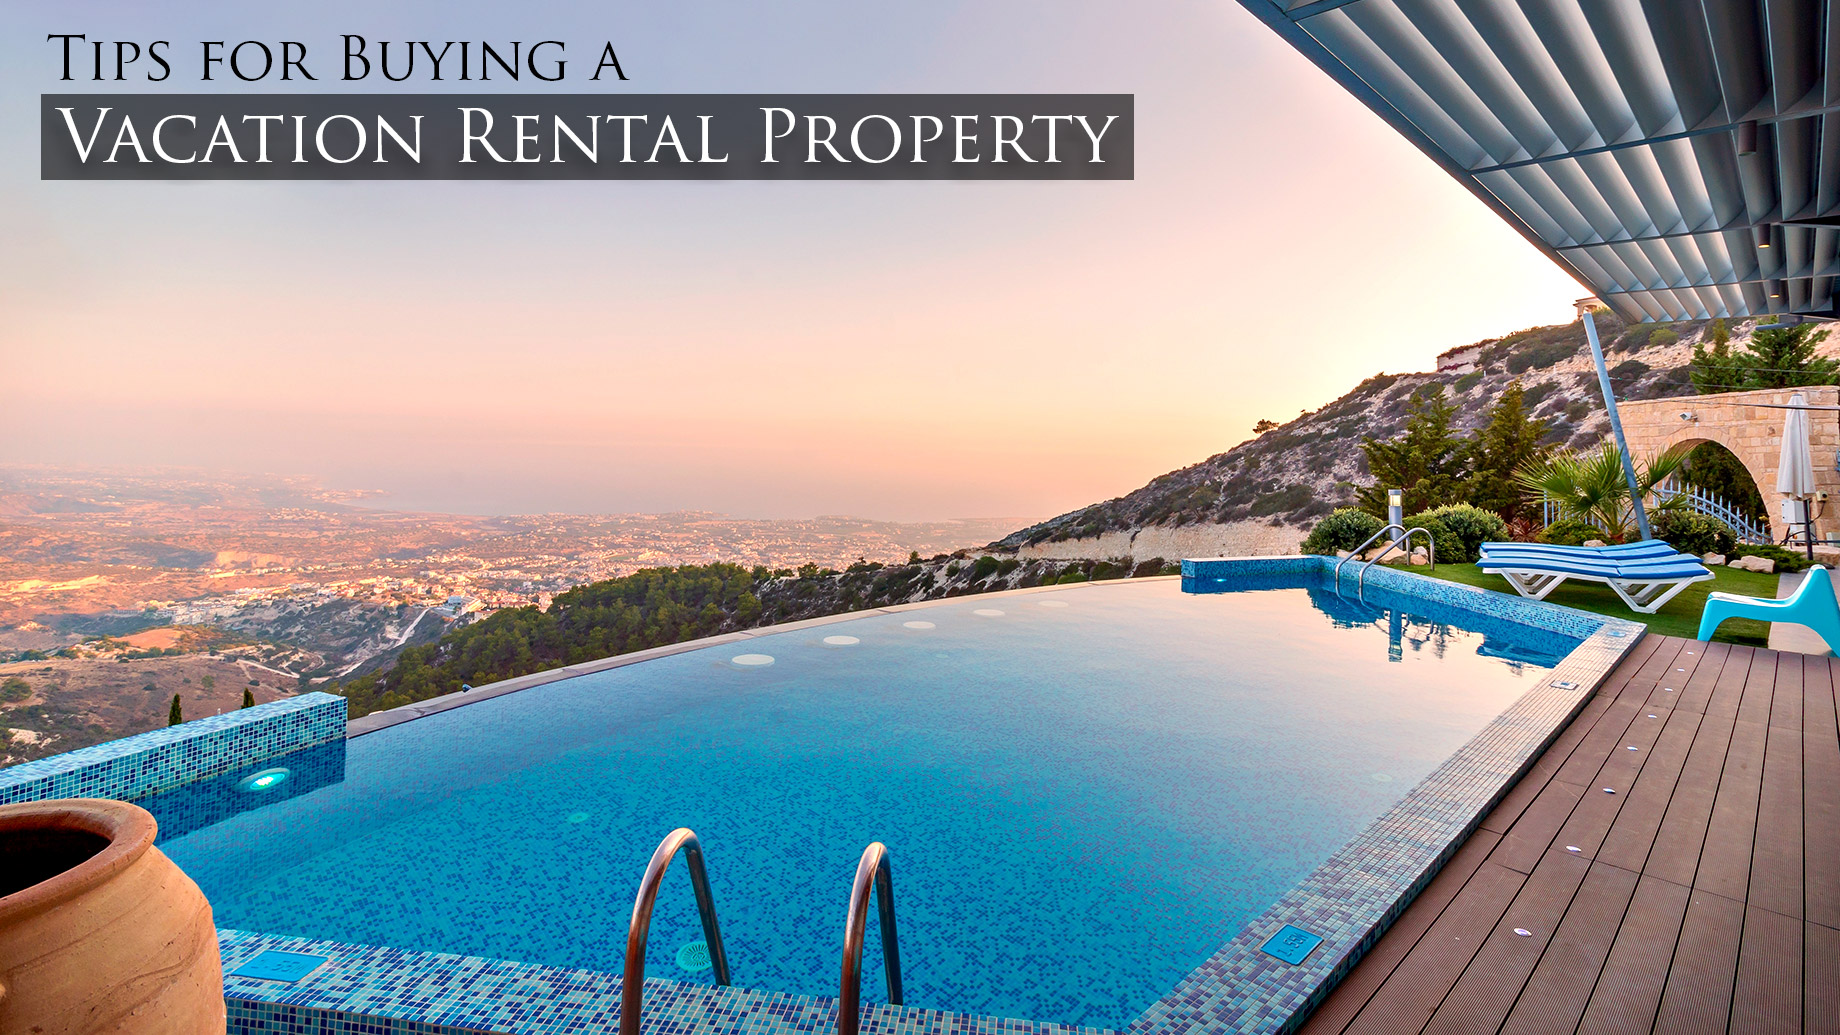 Tips for Buying a Vacation Rental Property